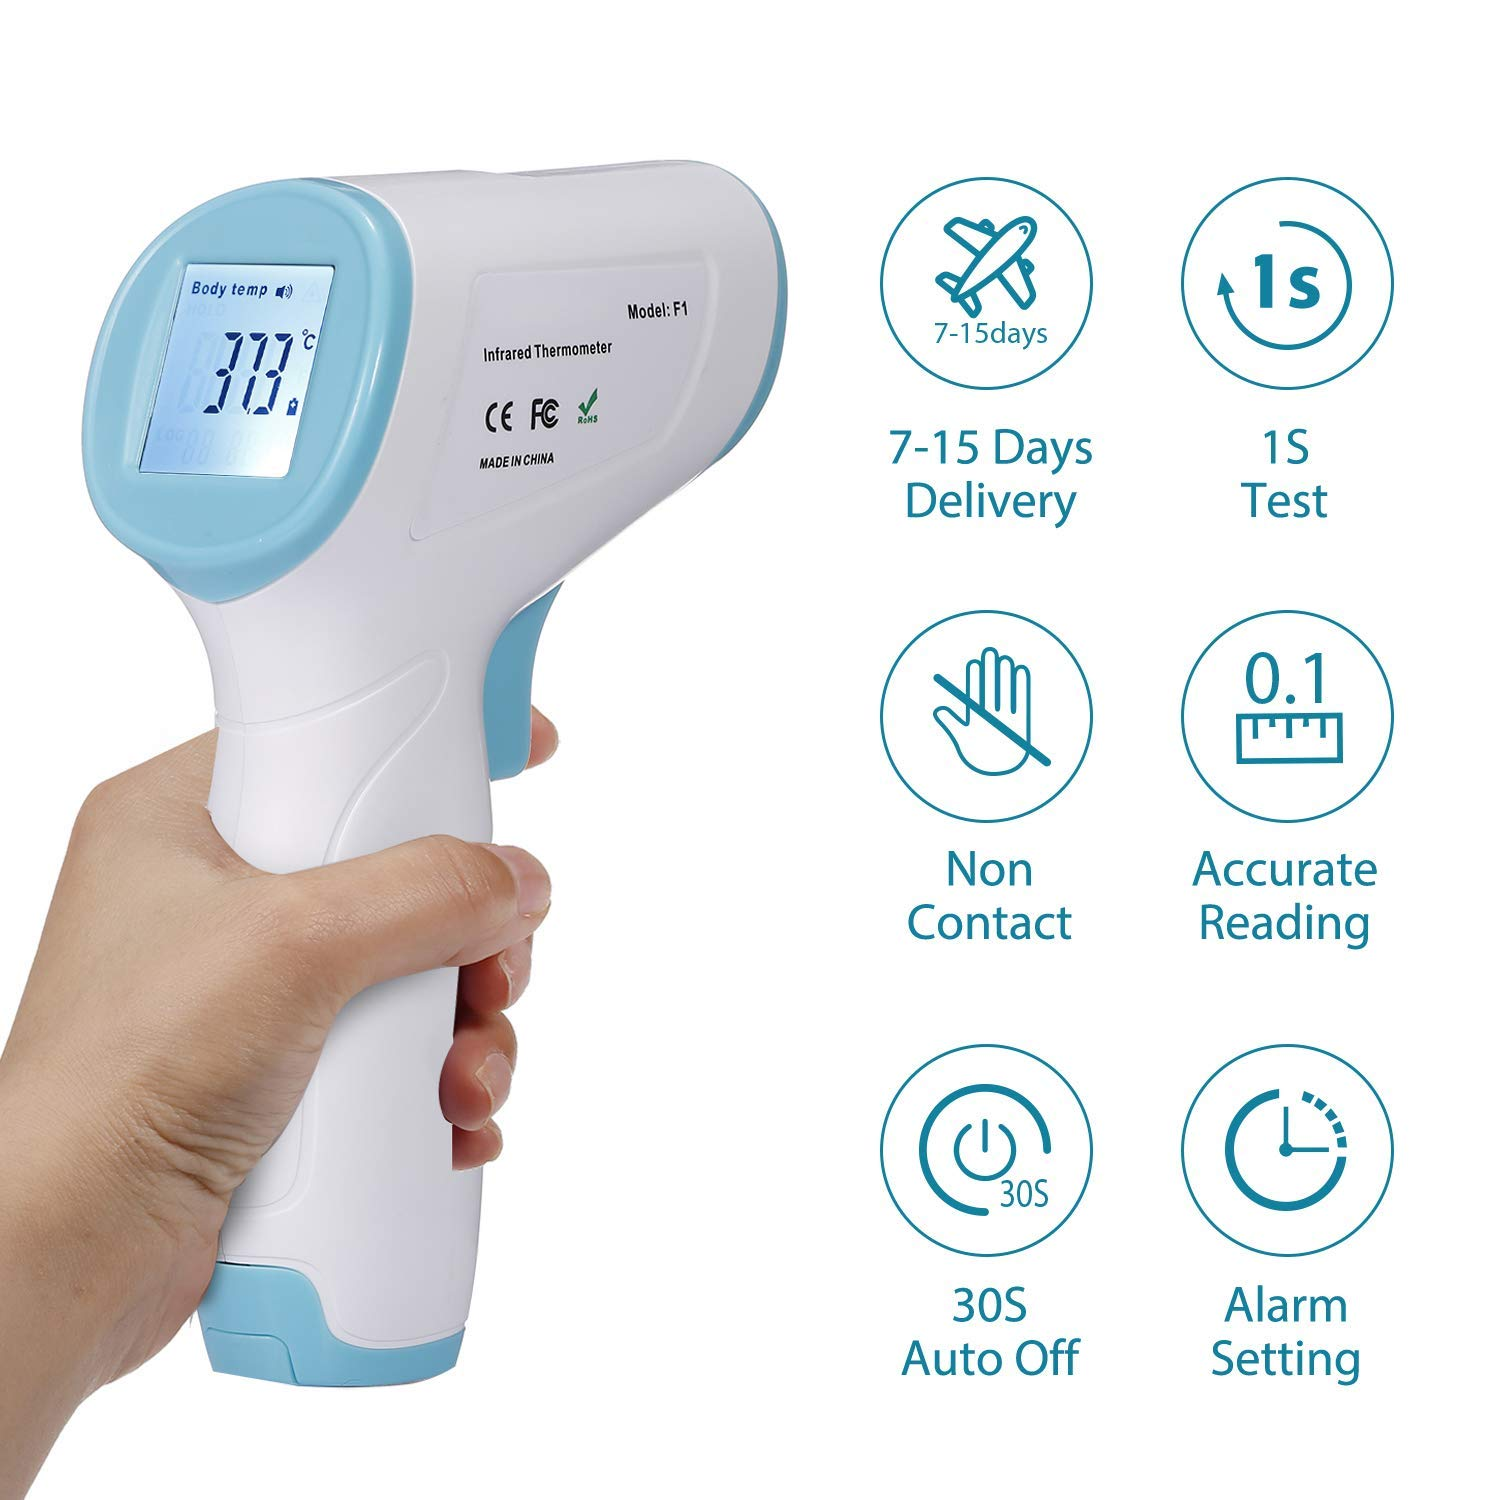 Koogeek Digital Thermometer Medical, Forehead Thermometer for Adults Baby, Non-Contact Ear Temperature Gun Infrared with Fever Alert Function, LED Display Screen, 1Second Accurate Instant Reading